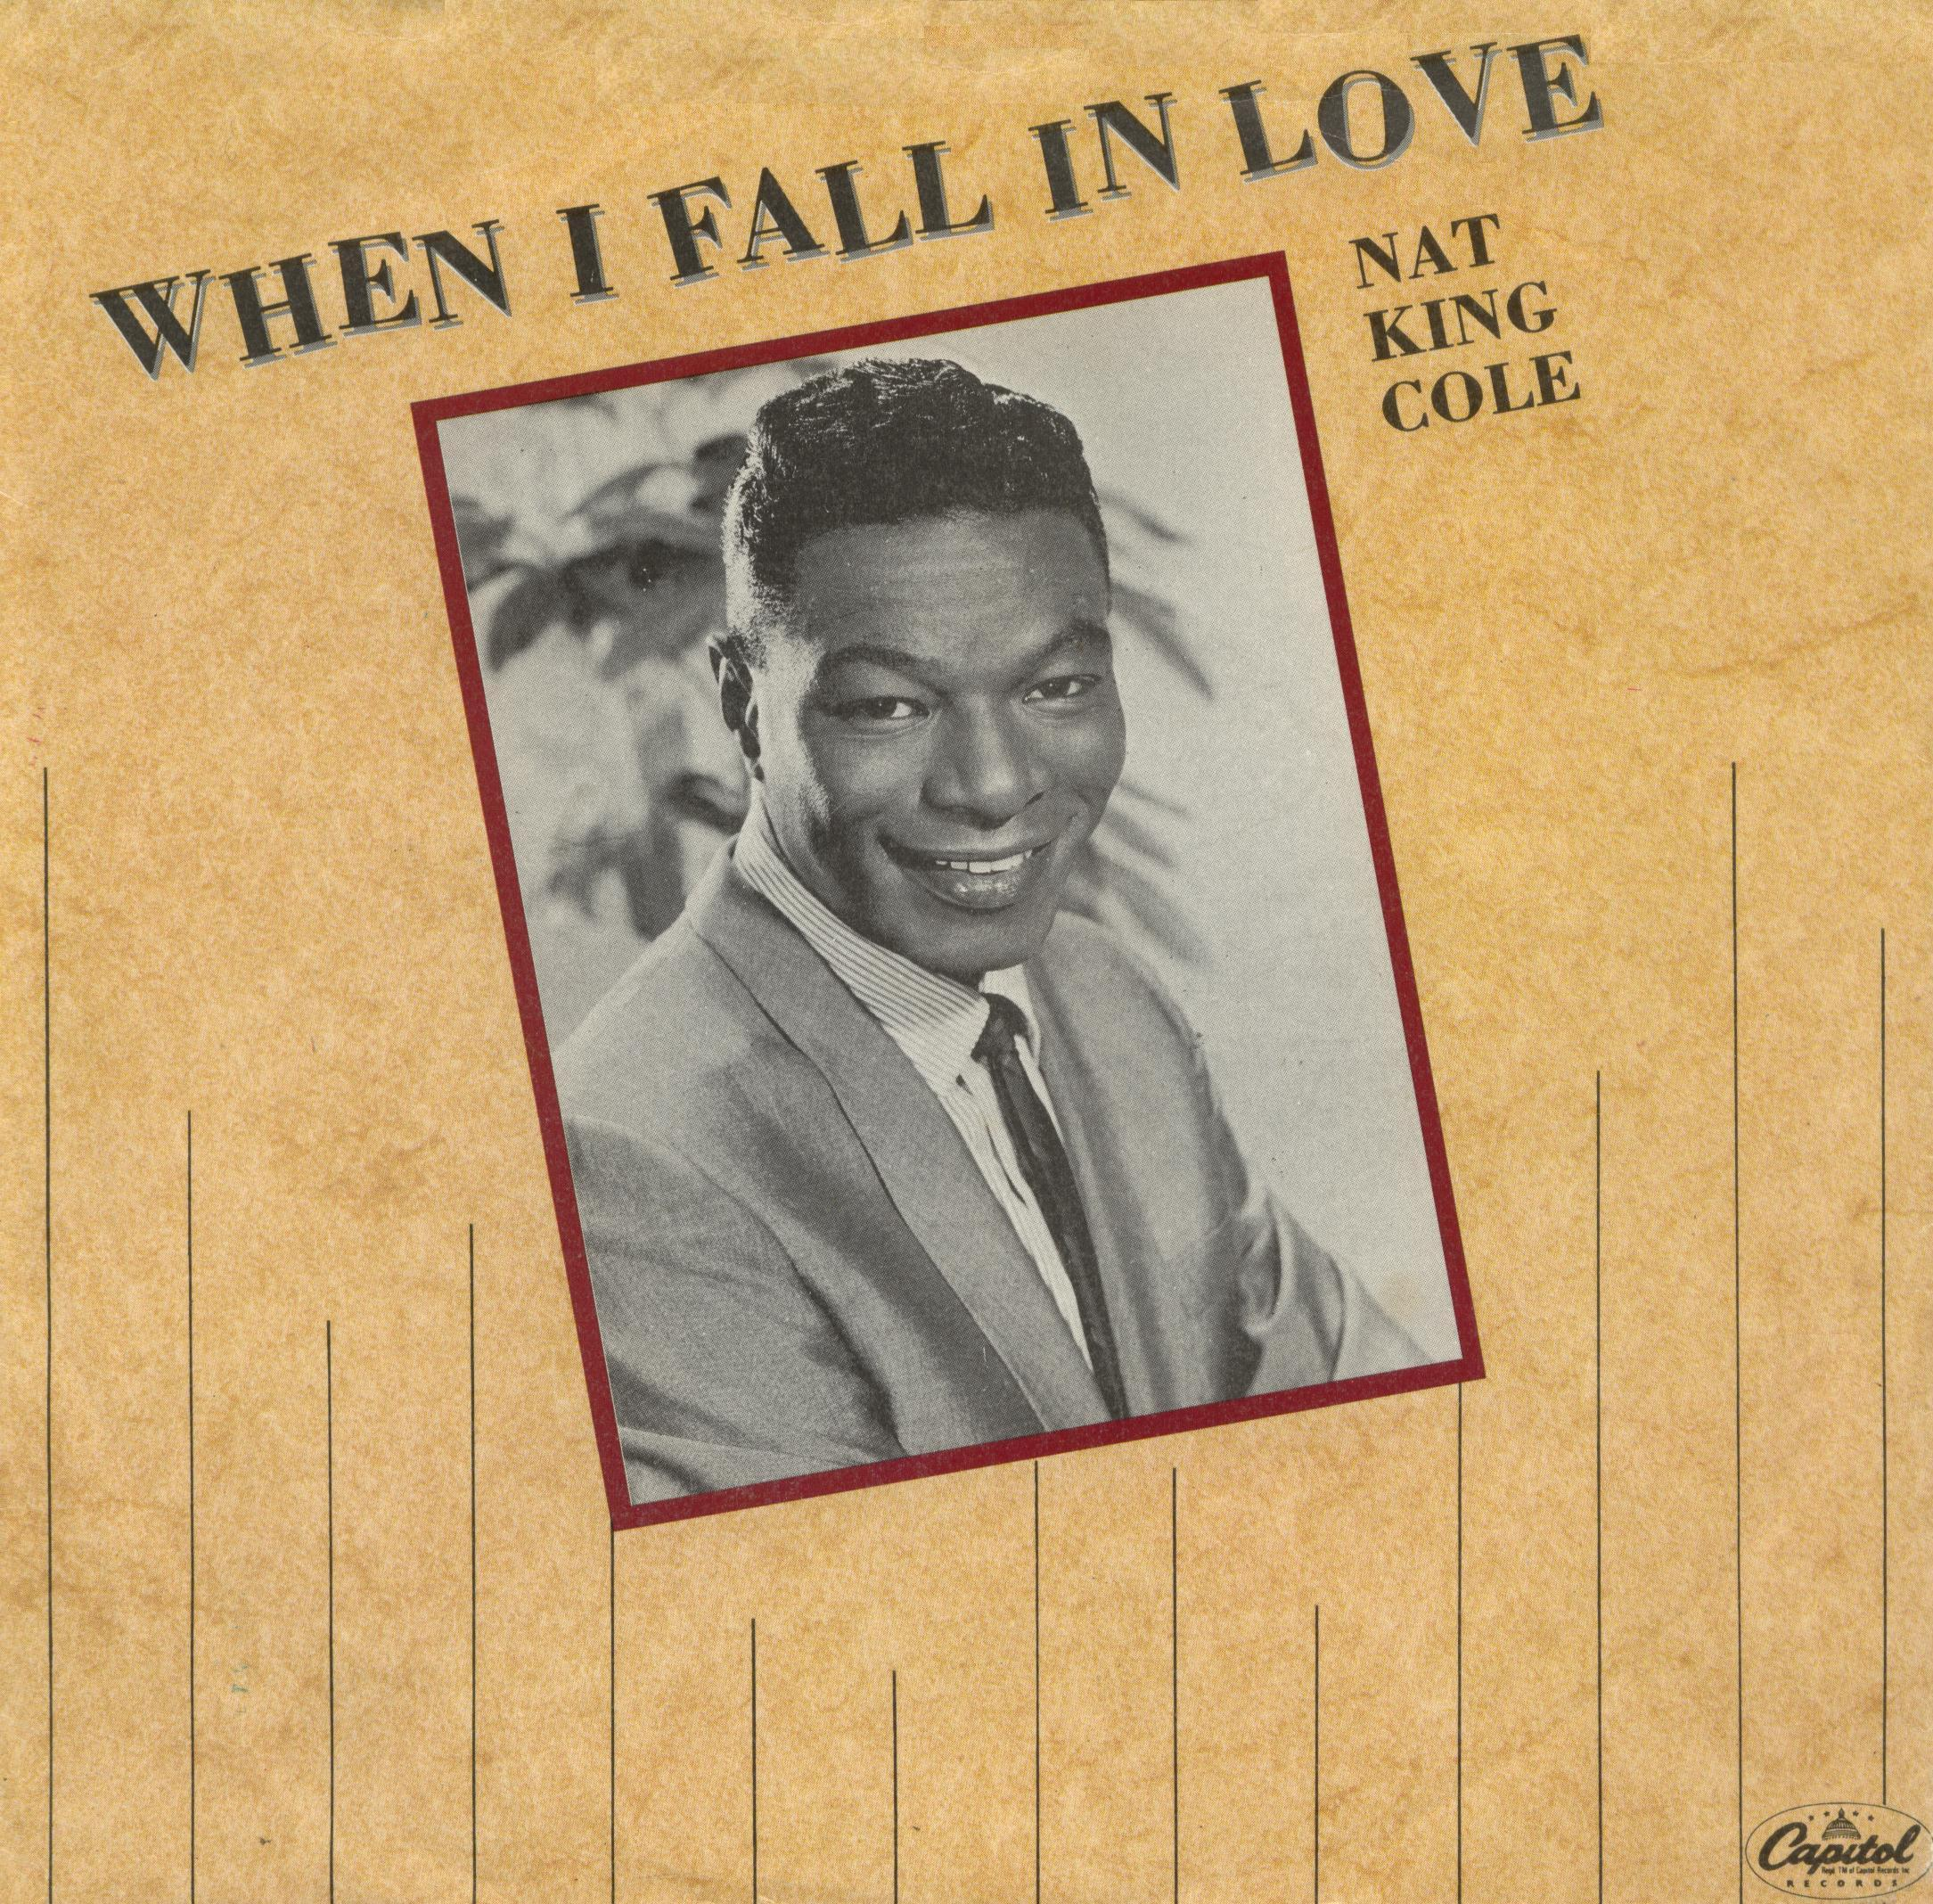 099 Nat King Cole - When I Fall In Love